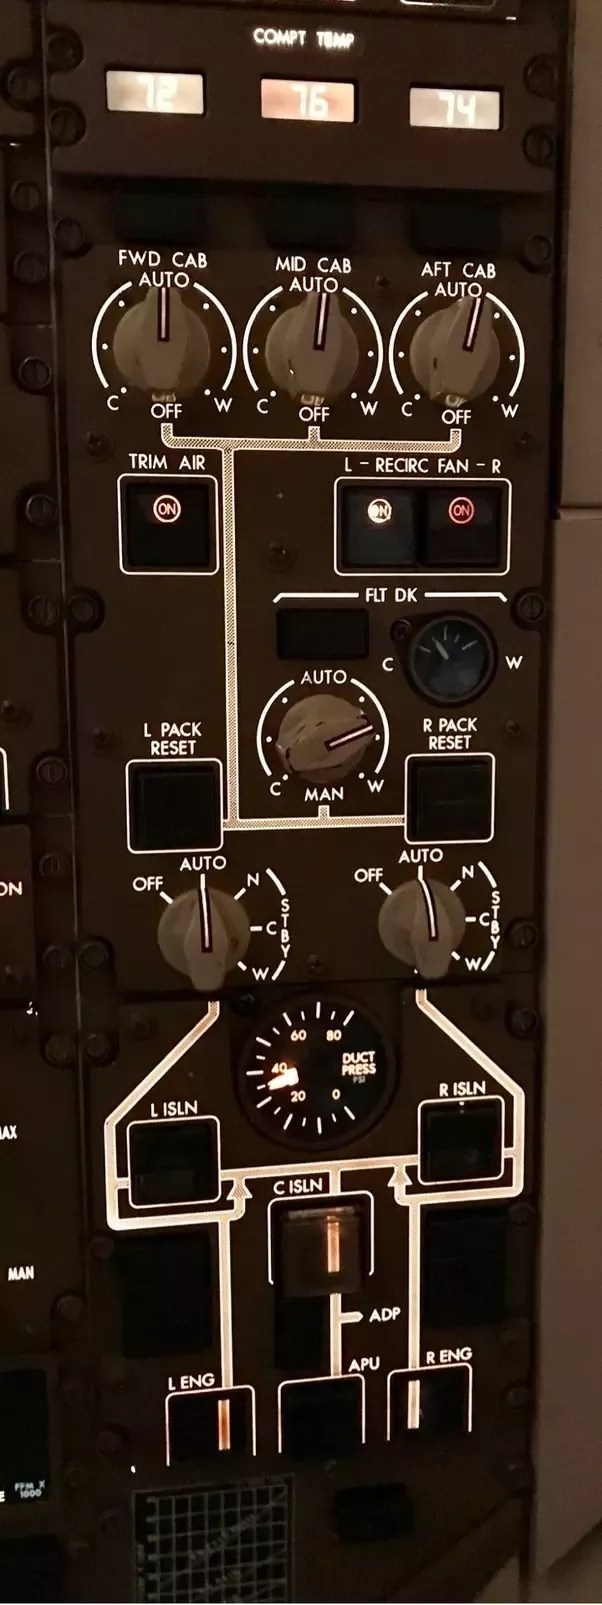 hight resolution of in this example the aircraft was at 37 000 feet the pressure differential between cabin and outside air is 8 7 psi and the cabin altitude is being